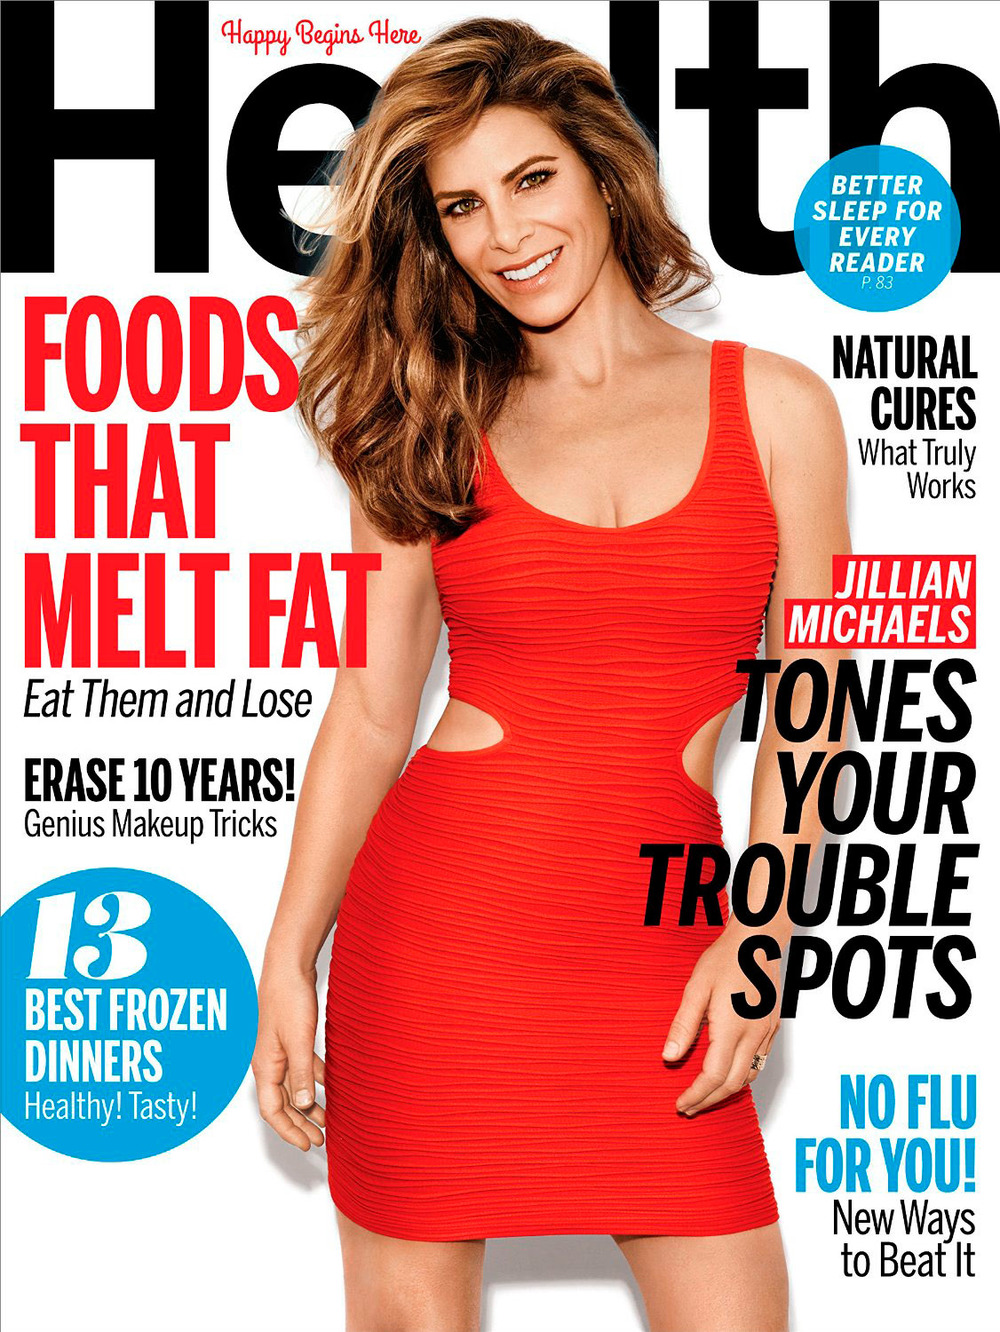 Jillian-Michaels-Health-Magazine-November-2014.jpg